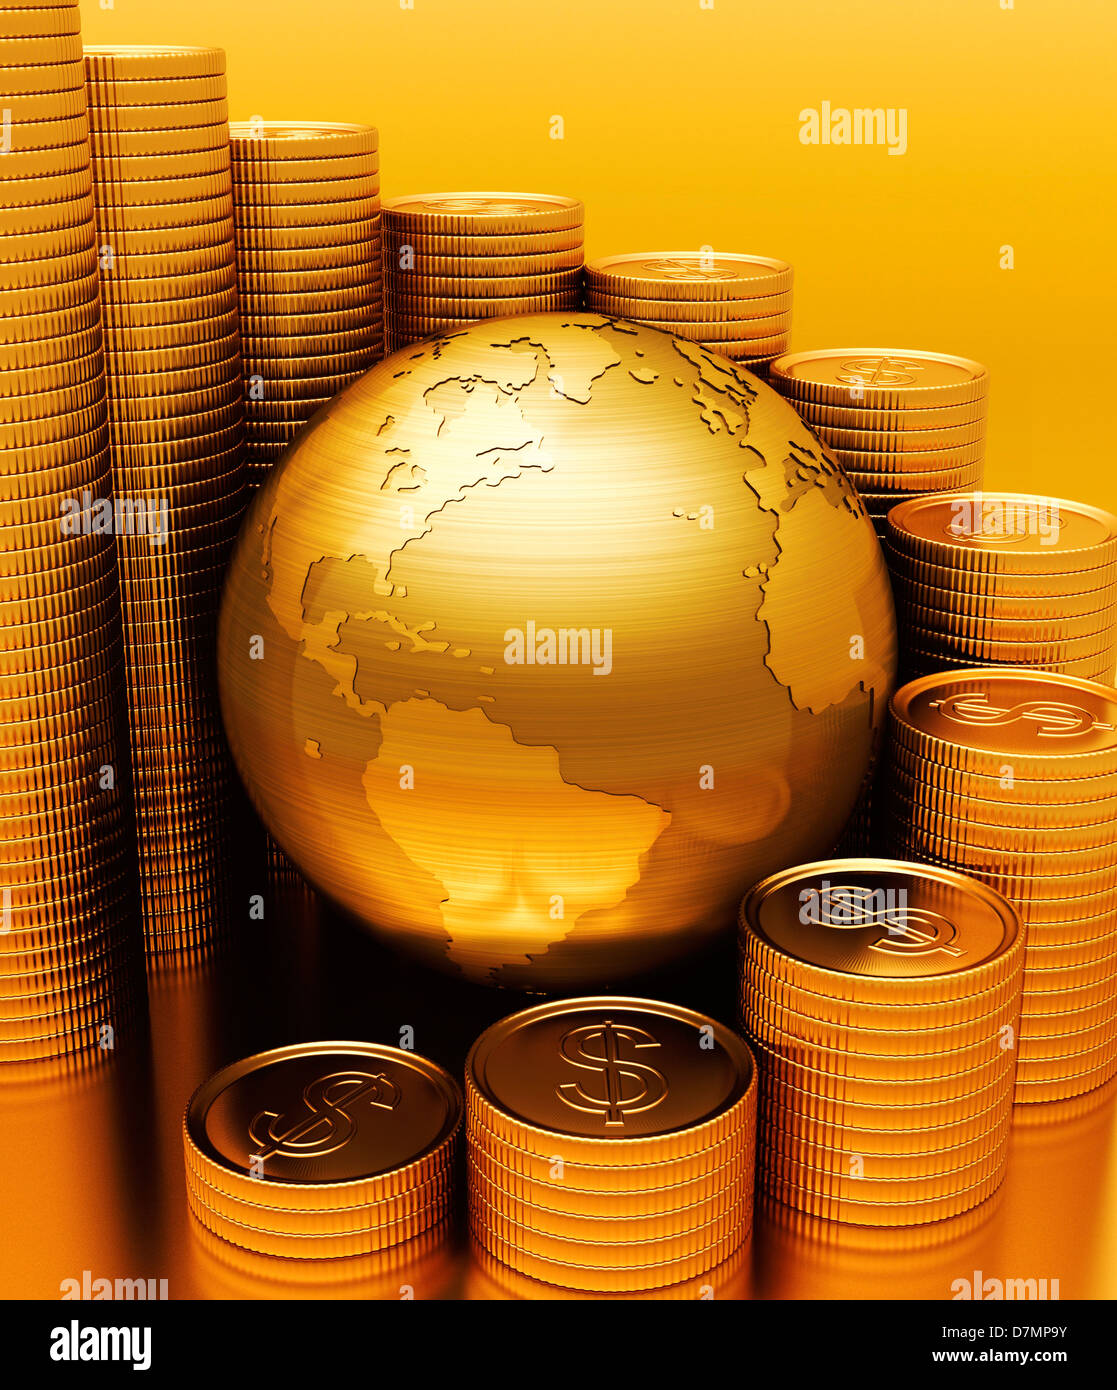 Global economy, conceptual artwork - Stock Image